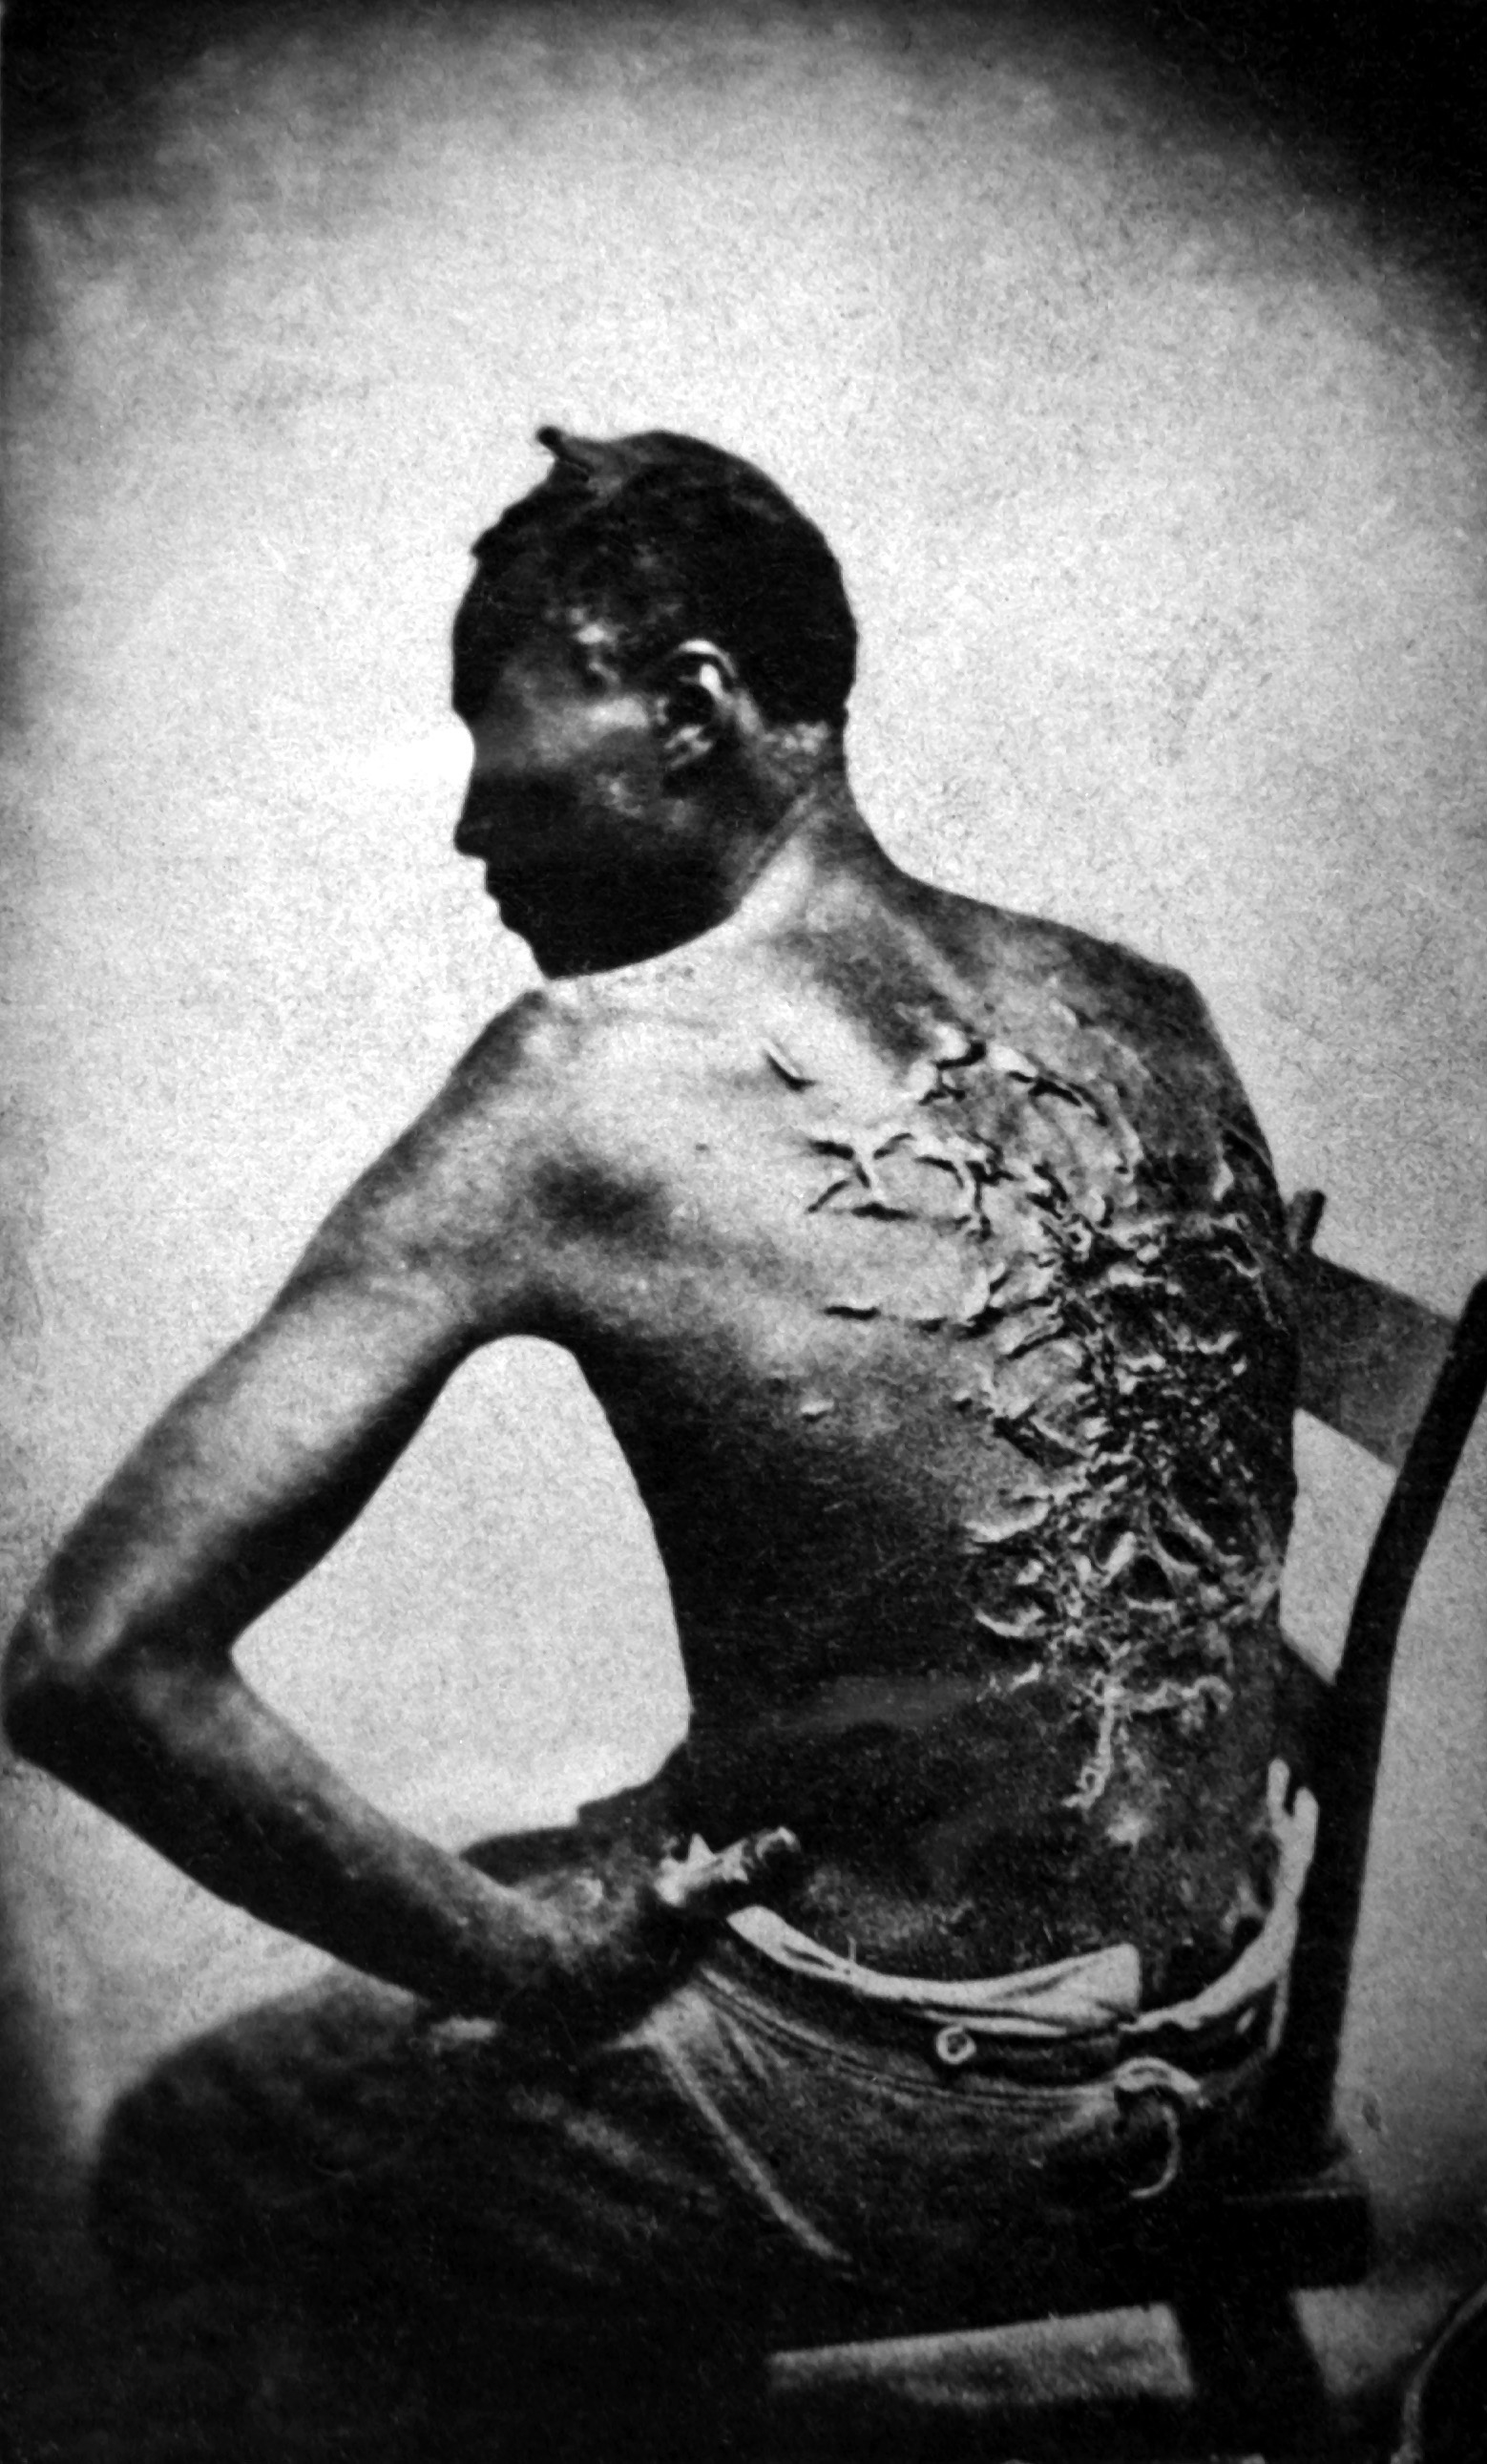 life of a prisoner in 1800s essay History and development of corrections from 1700 - present  parole began at the end of the 1800s when it was instituted, many prisoners were already receiving .